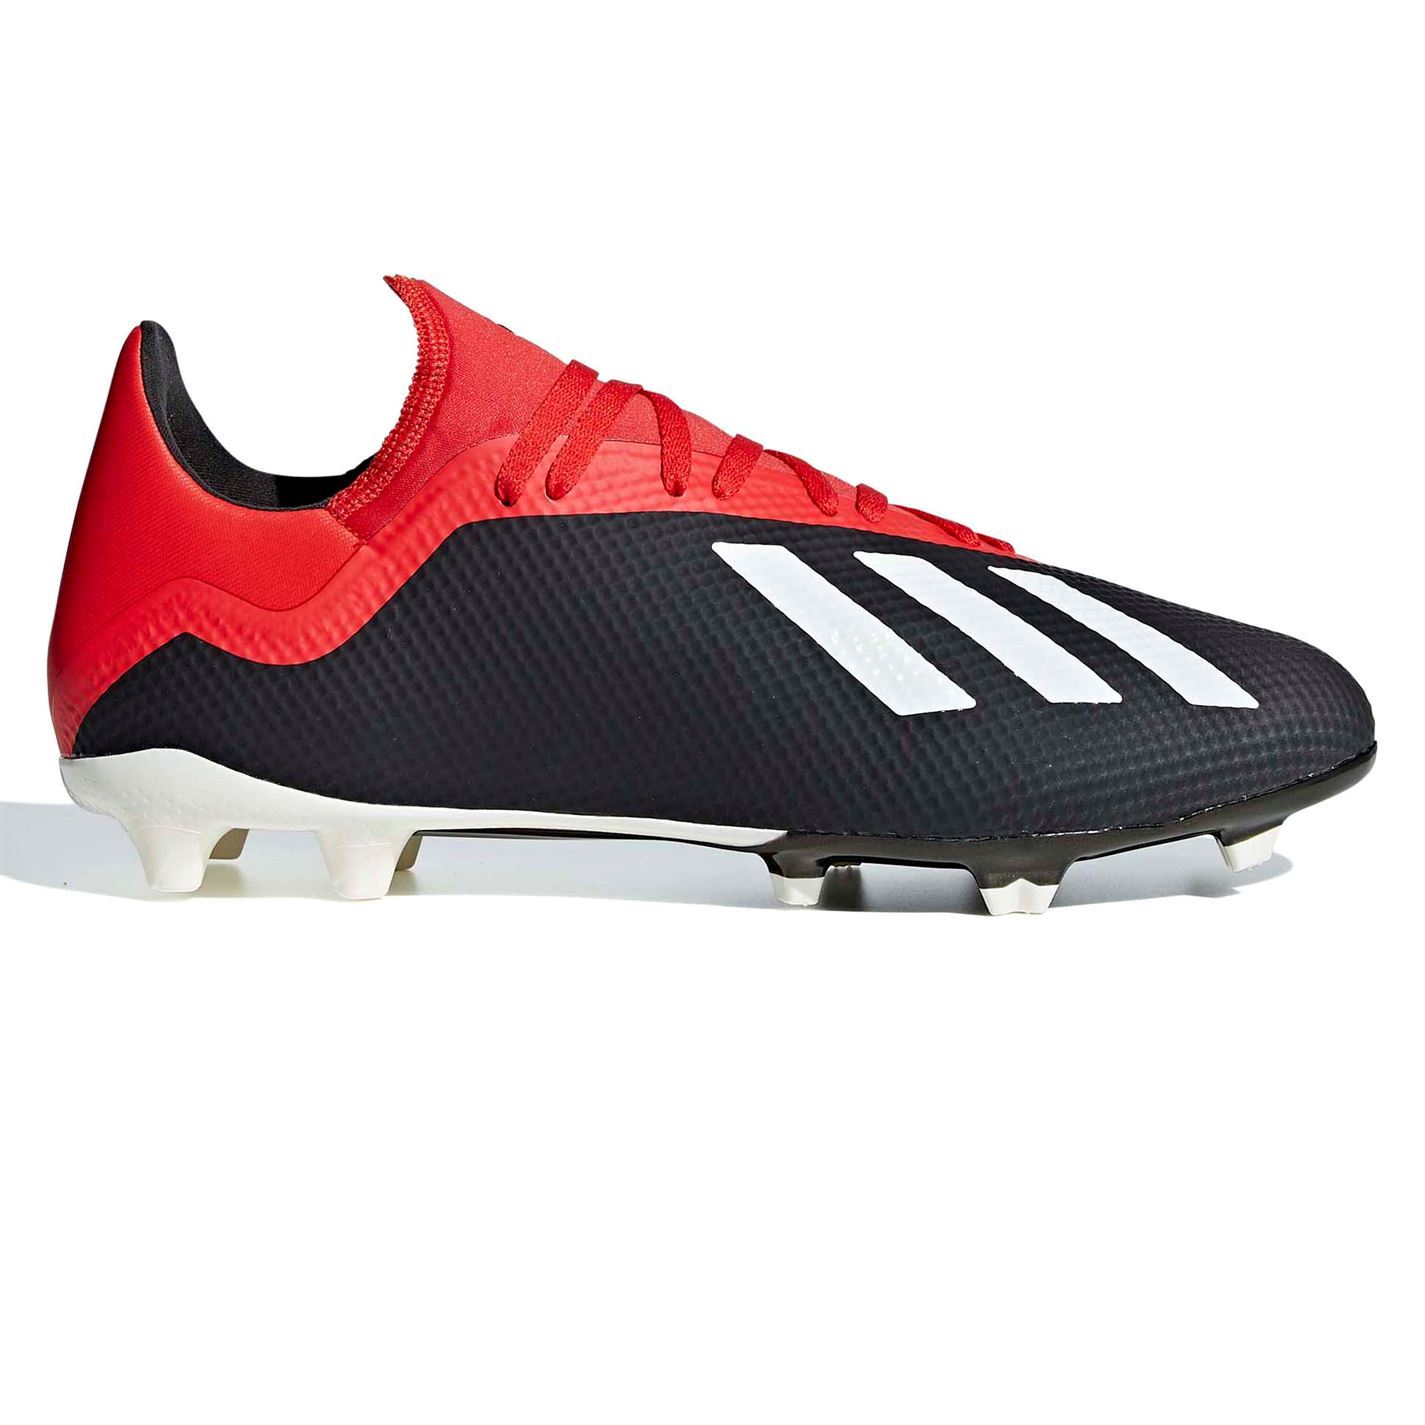 35 Best Scarpe Adidas X images | Cleats, Shoes, Sports